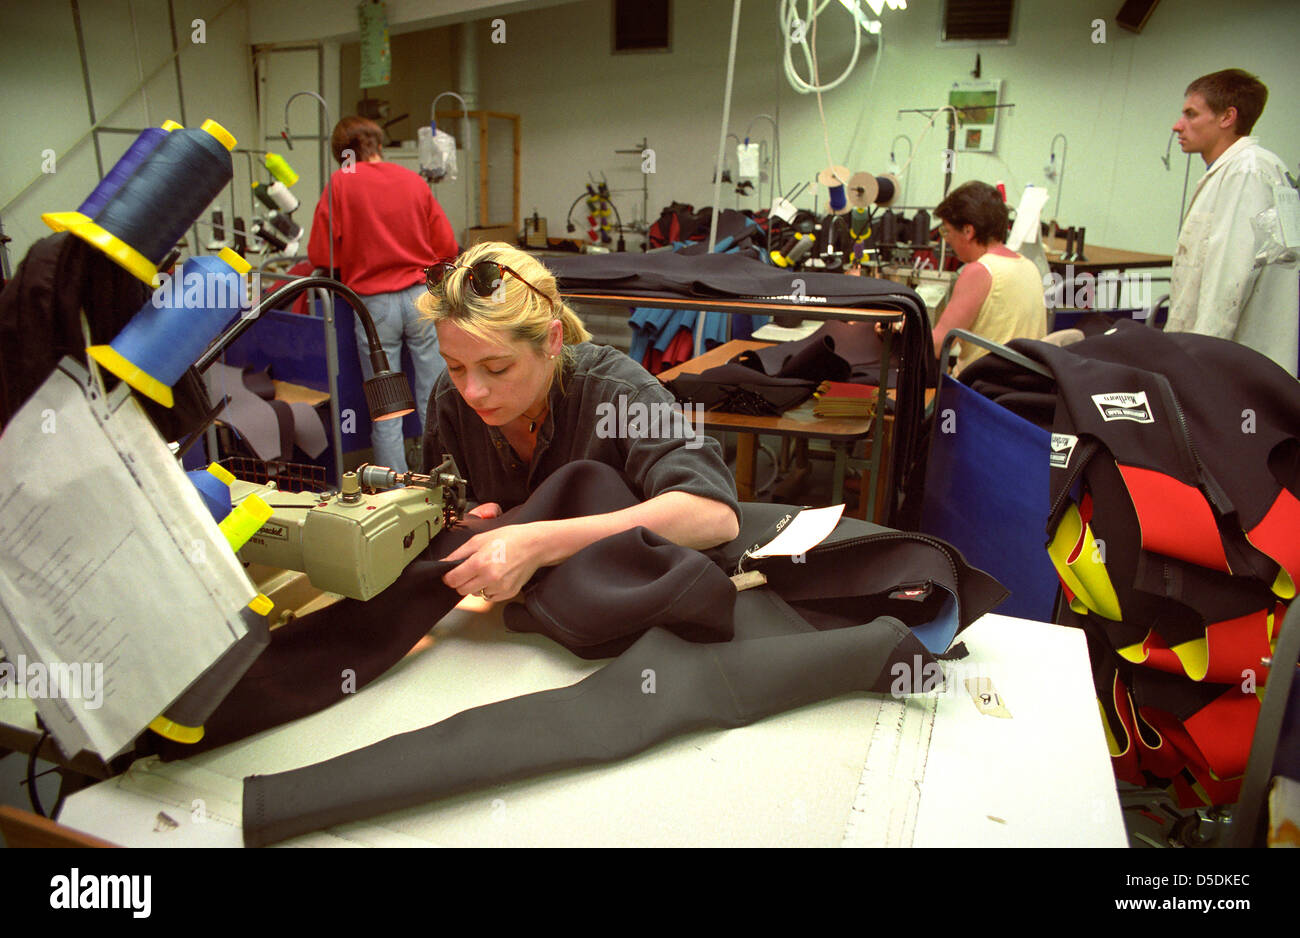 A machinist stitching together a wetsuit. - Stock Image